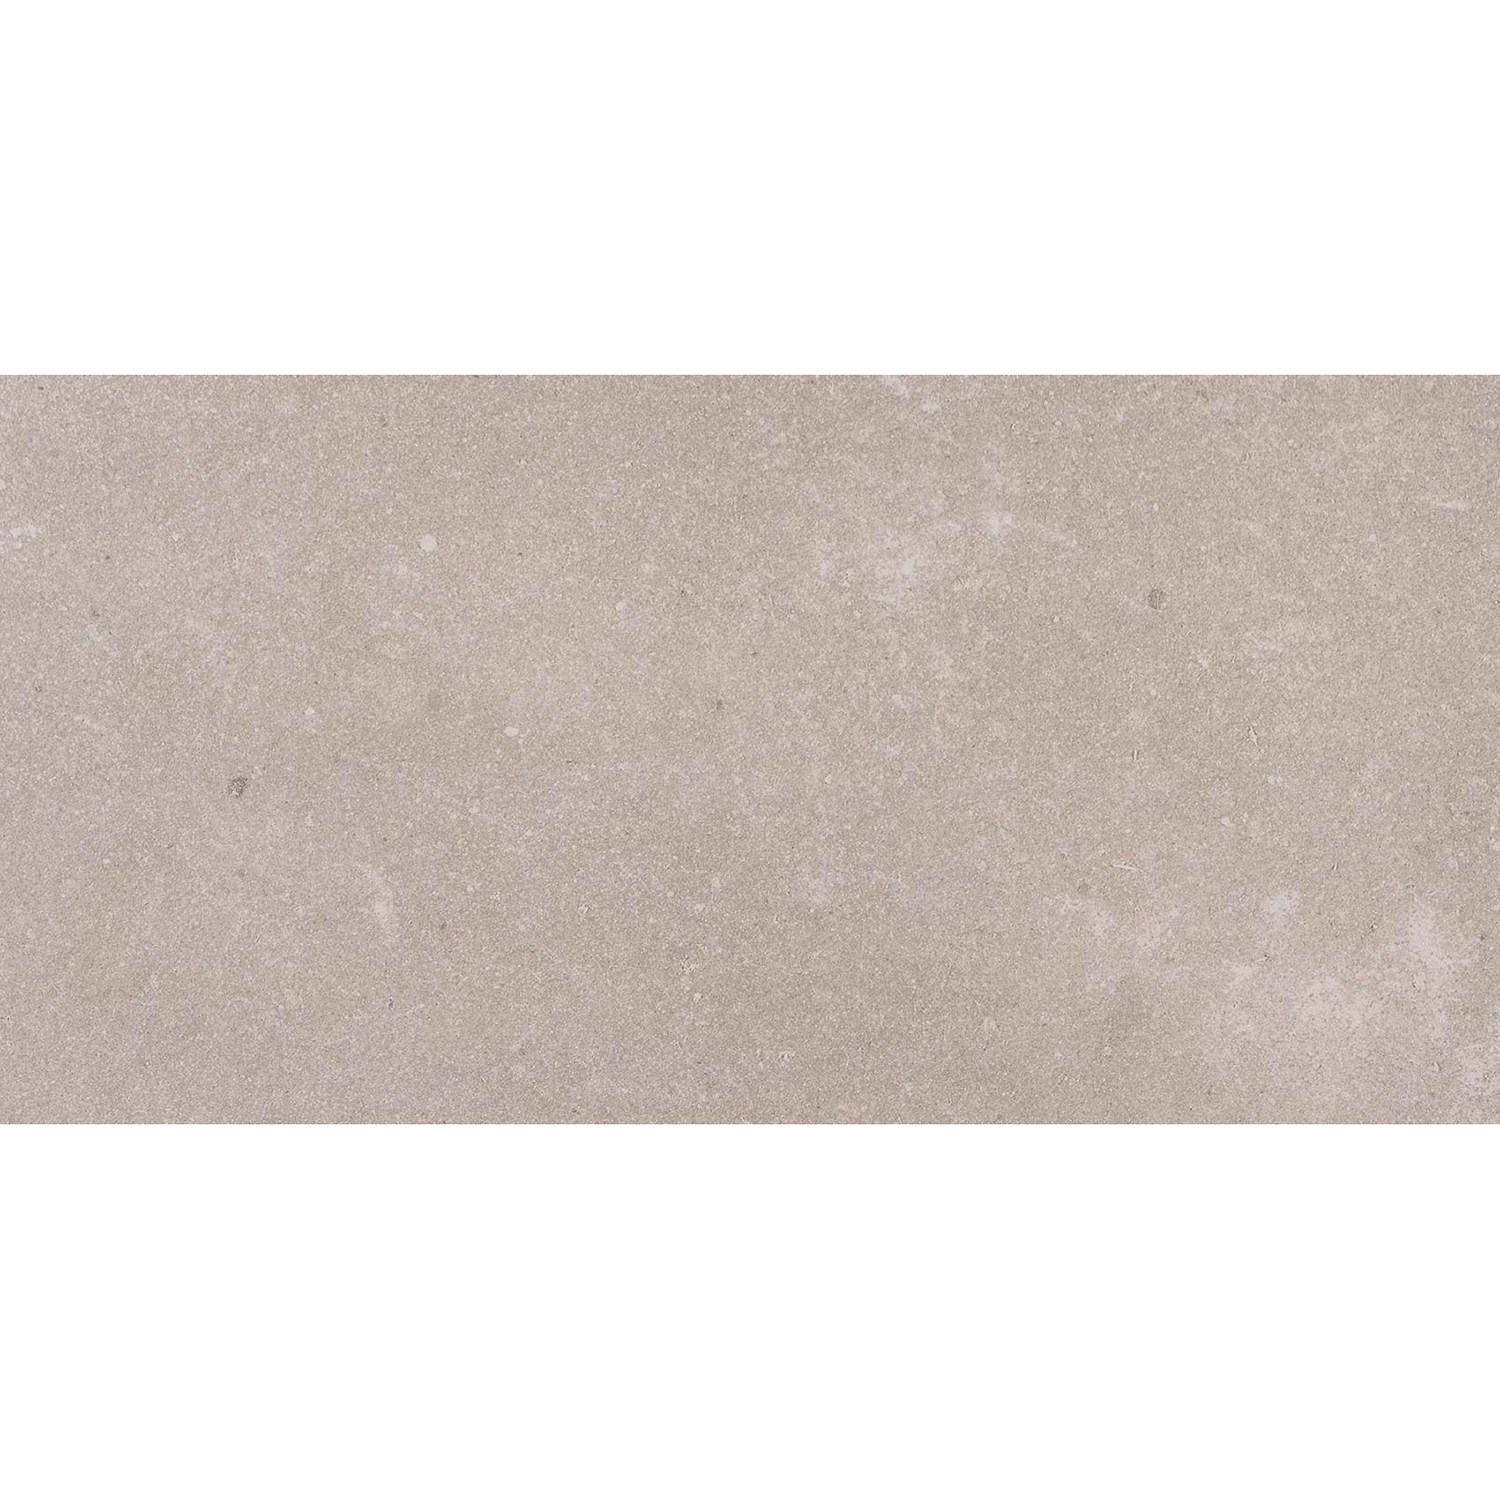 Klinker Bricmate K36 Cement Grey 60x30 cm